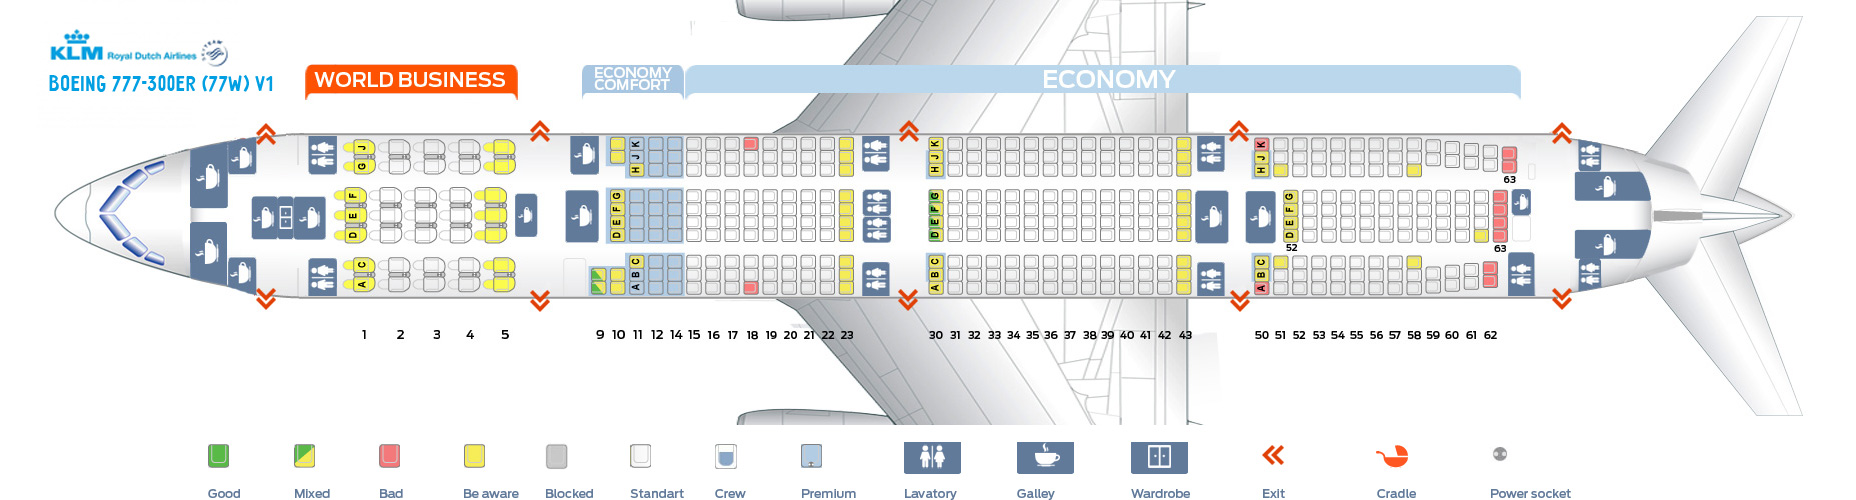 Seat map Boeing 777-300 KLM. Best seats in the plane